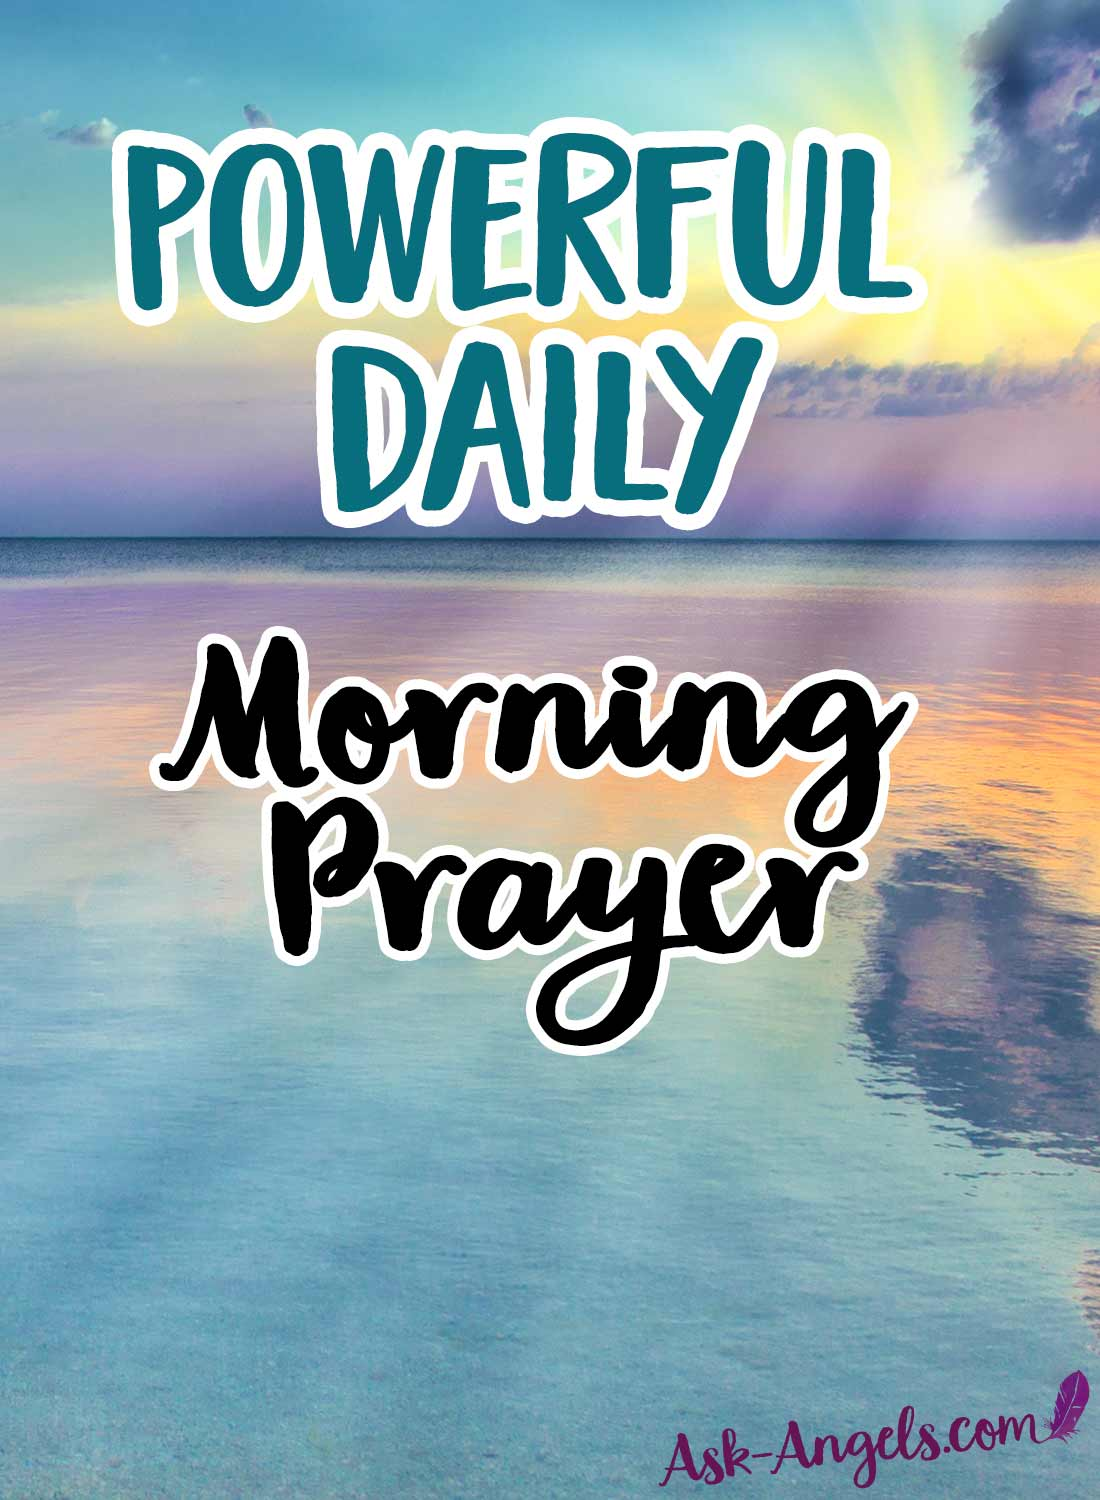 Powerful Daily Morning Prayer